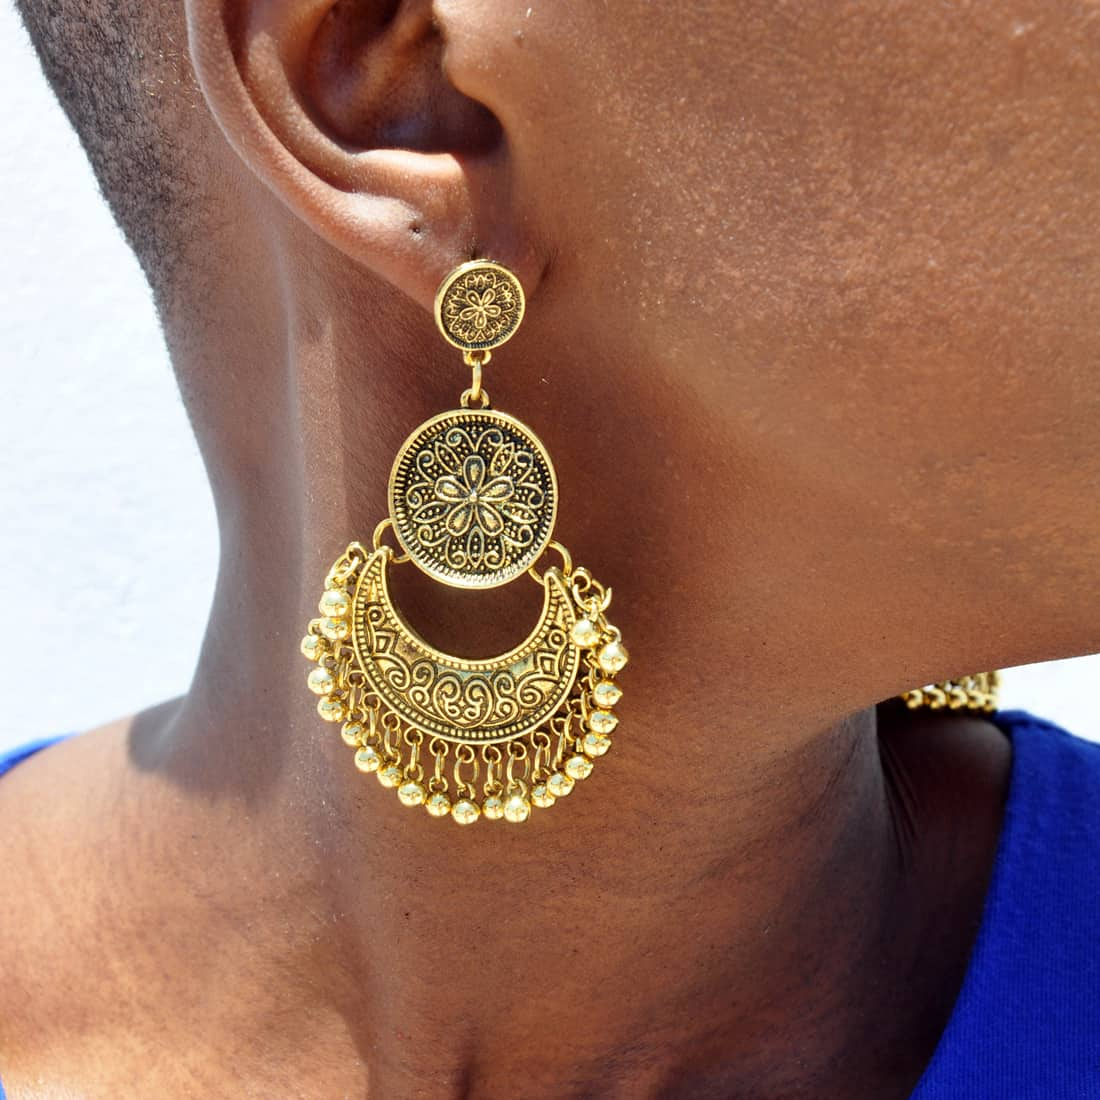 M0319 gold5 Jewelry Accessories Earrings maureens.com boutique